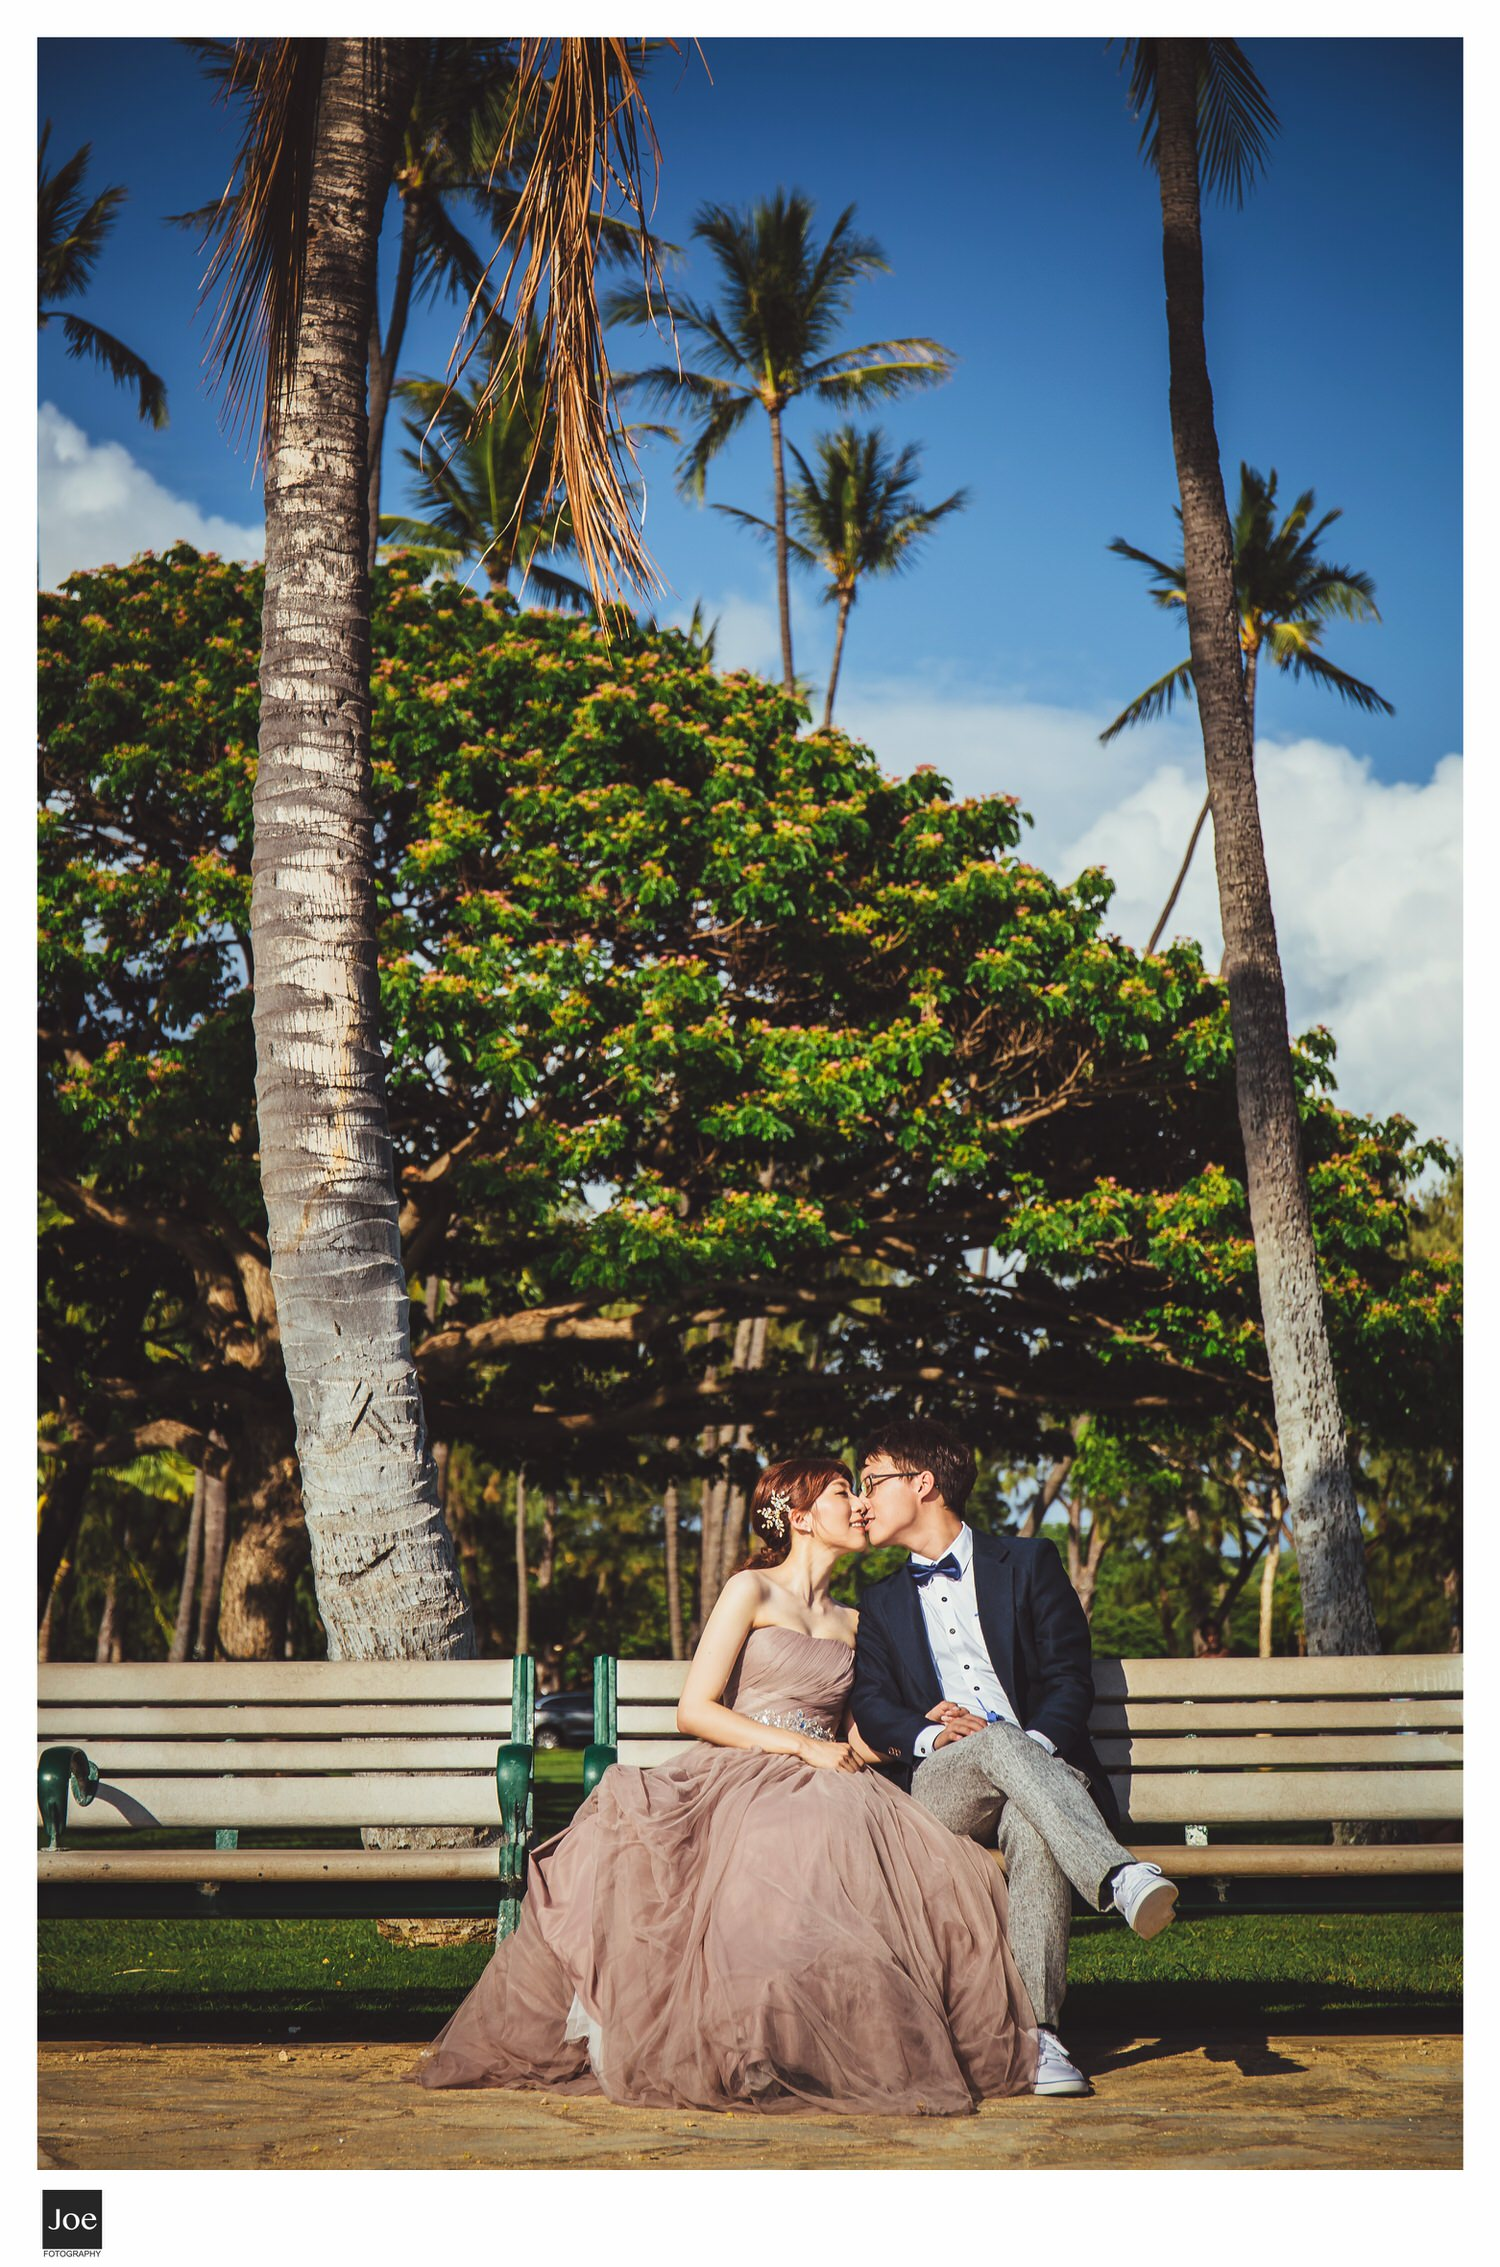 043-kapiolani-park-hawaii-pre-wedding-tiffany-tony-joe-fotography.jpg